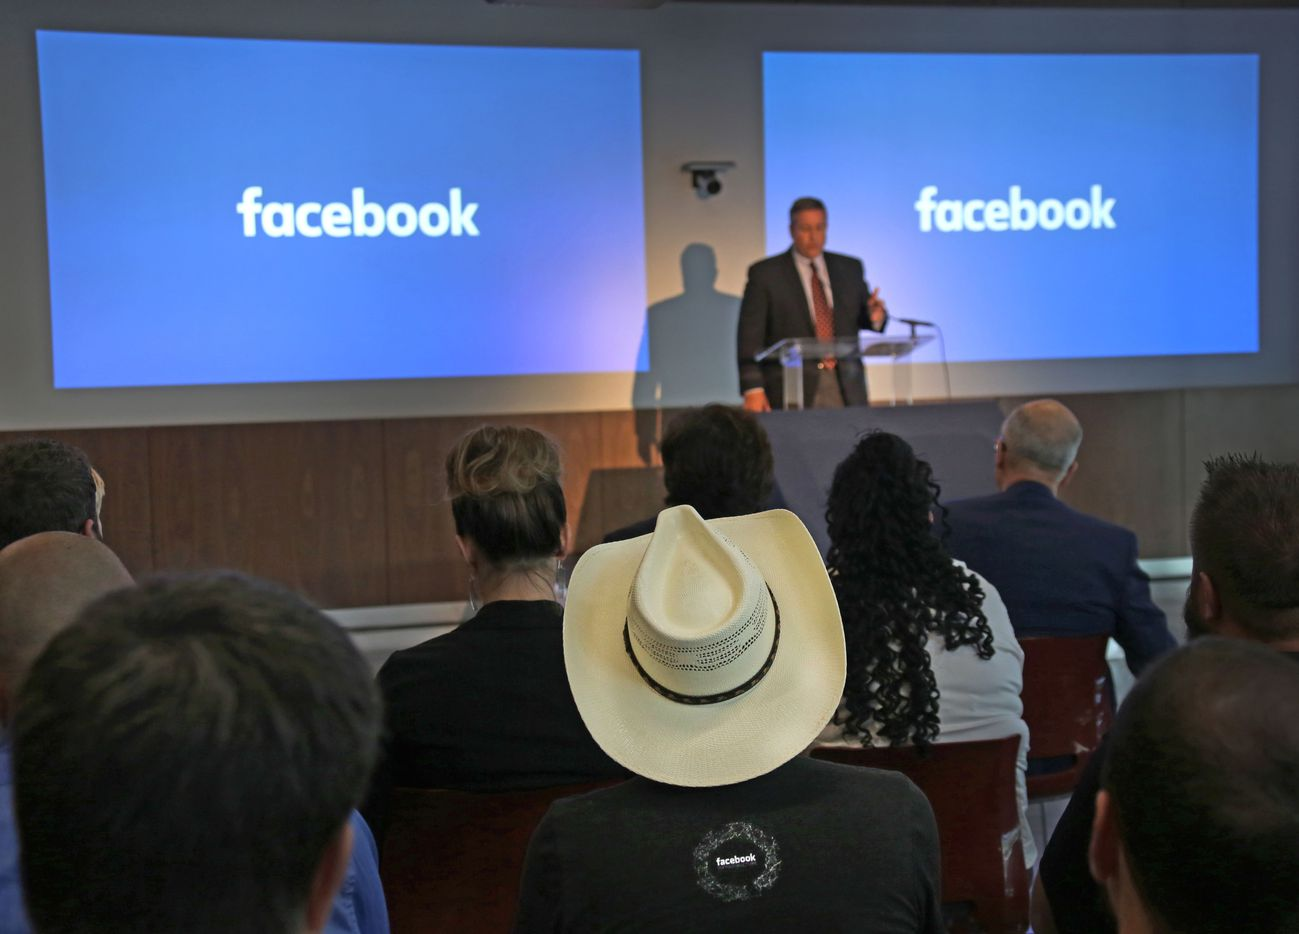 Tom Furlong, vice president of infrastructure at Facebook, greets guests and media during the grand opening and tour of Facebook's Fort Worth Data Center.